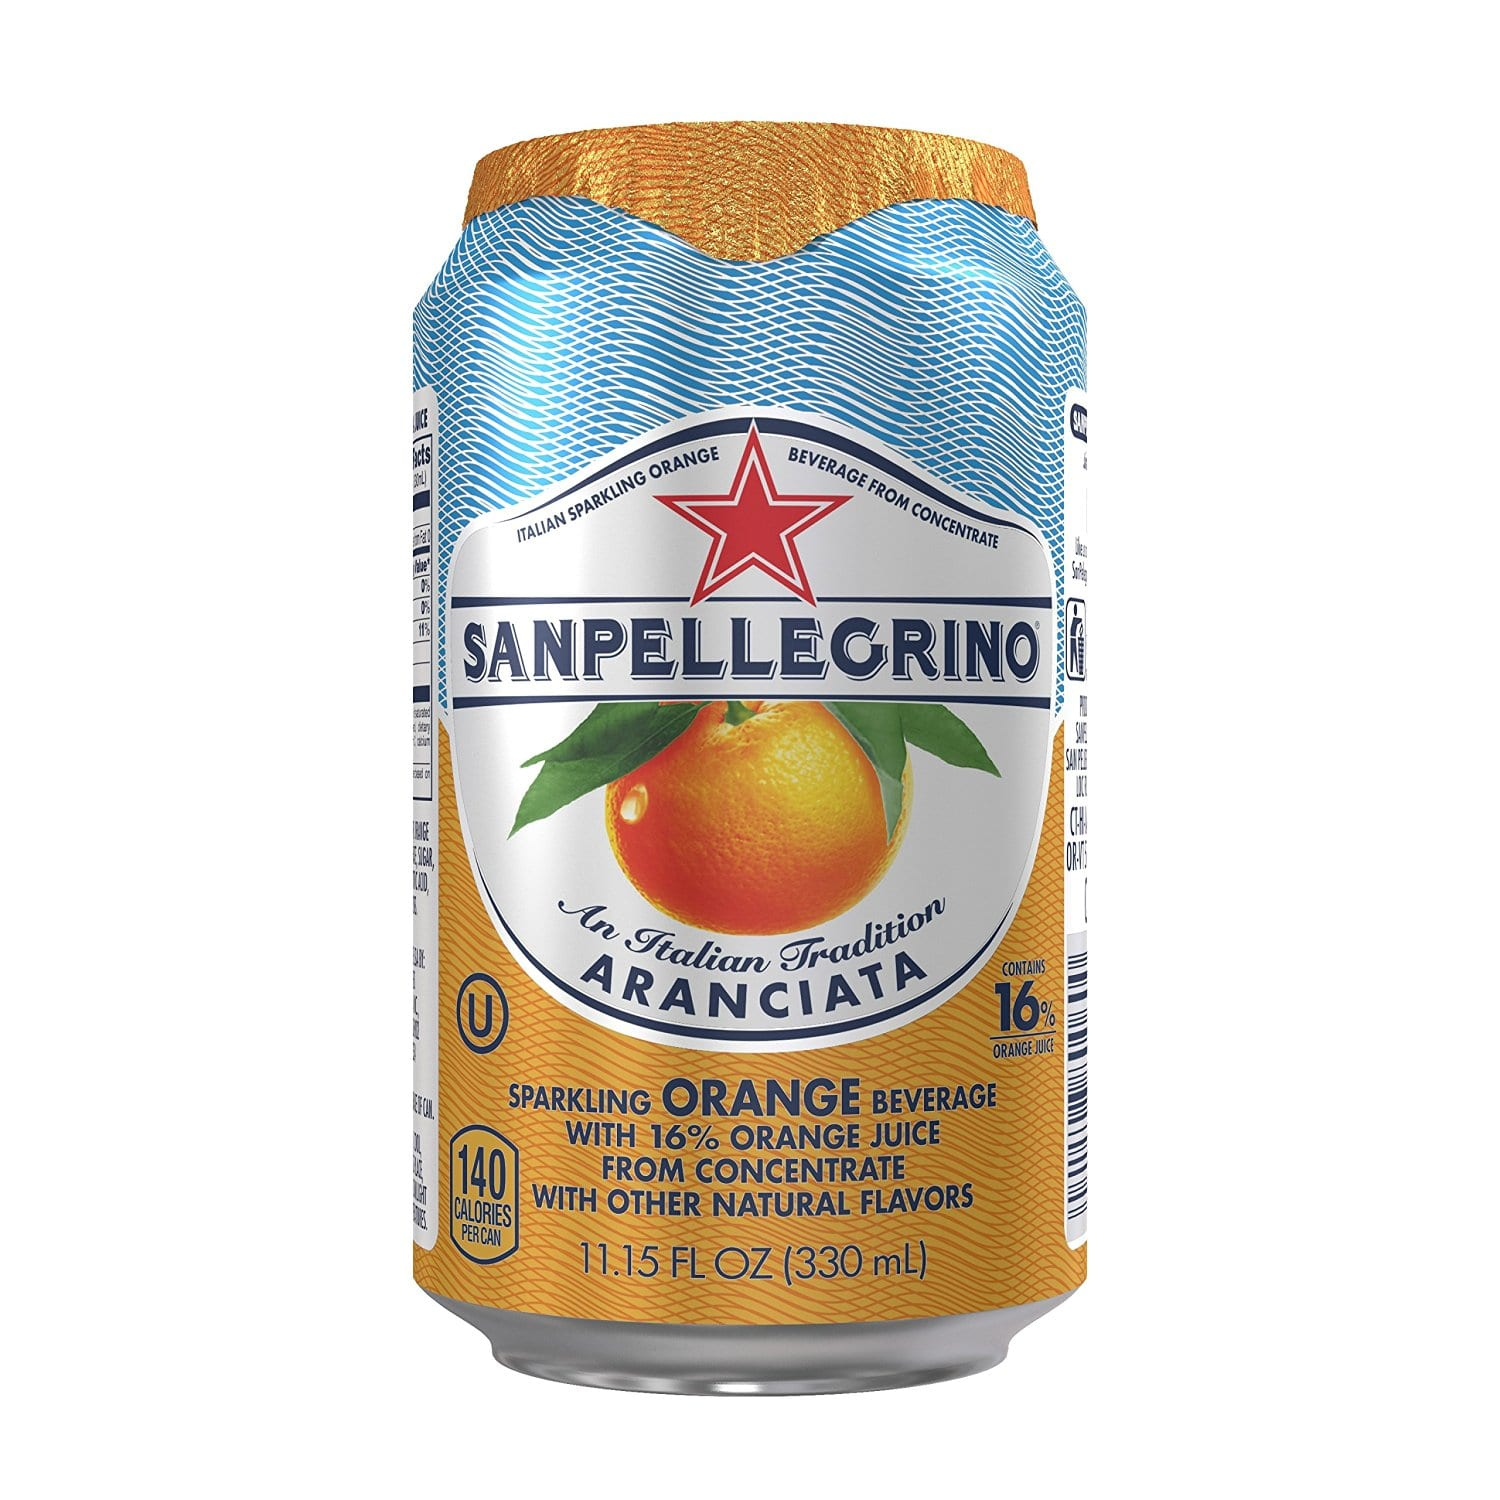 San Pellegrino Sparkling Fruit Beverages, Aranciata/Orange 11.15-ounce cans (Total of 24) For $15 + 20% clip the Coupon $11.37